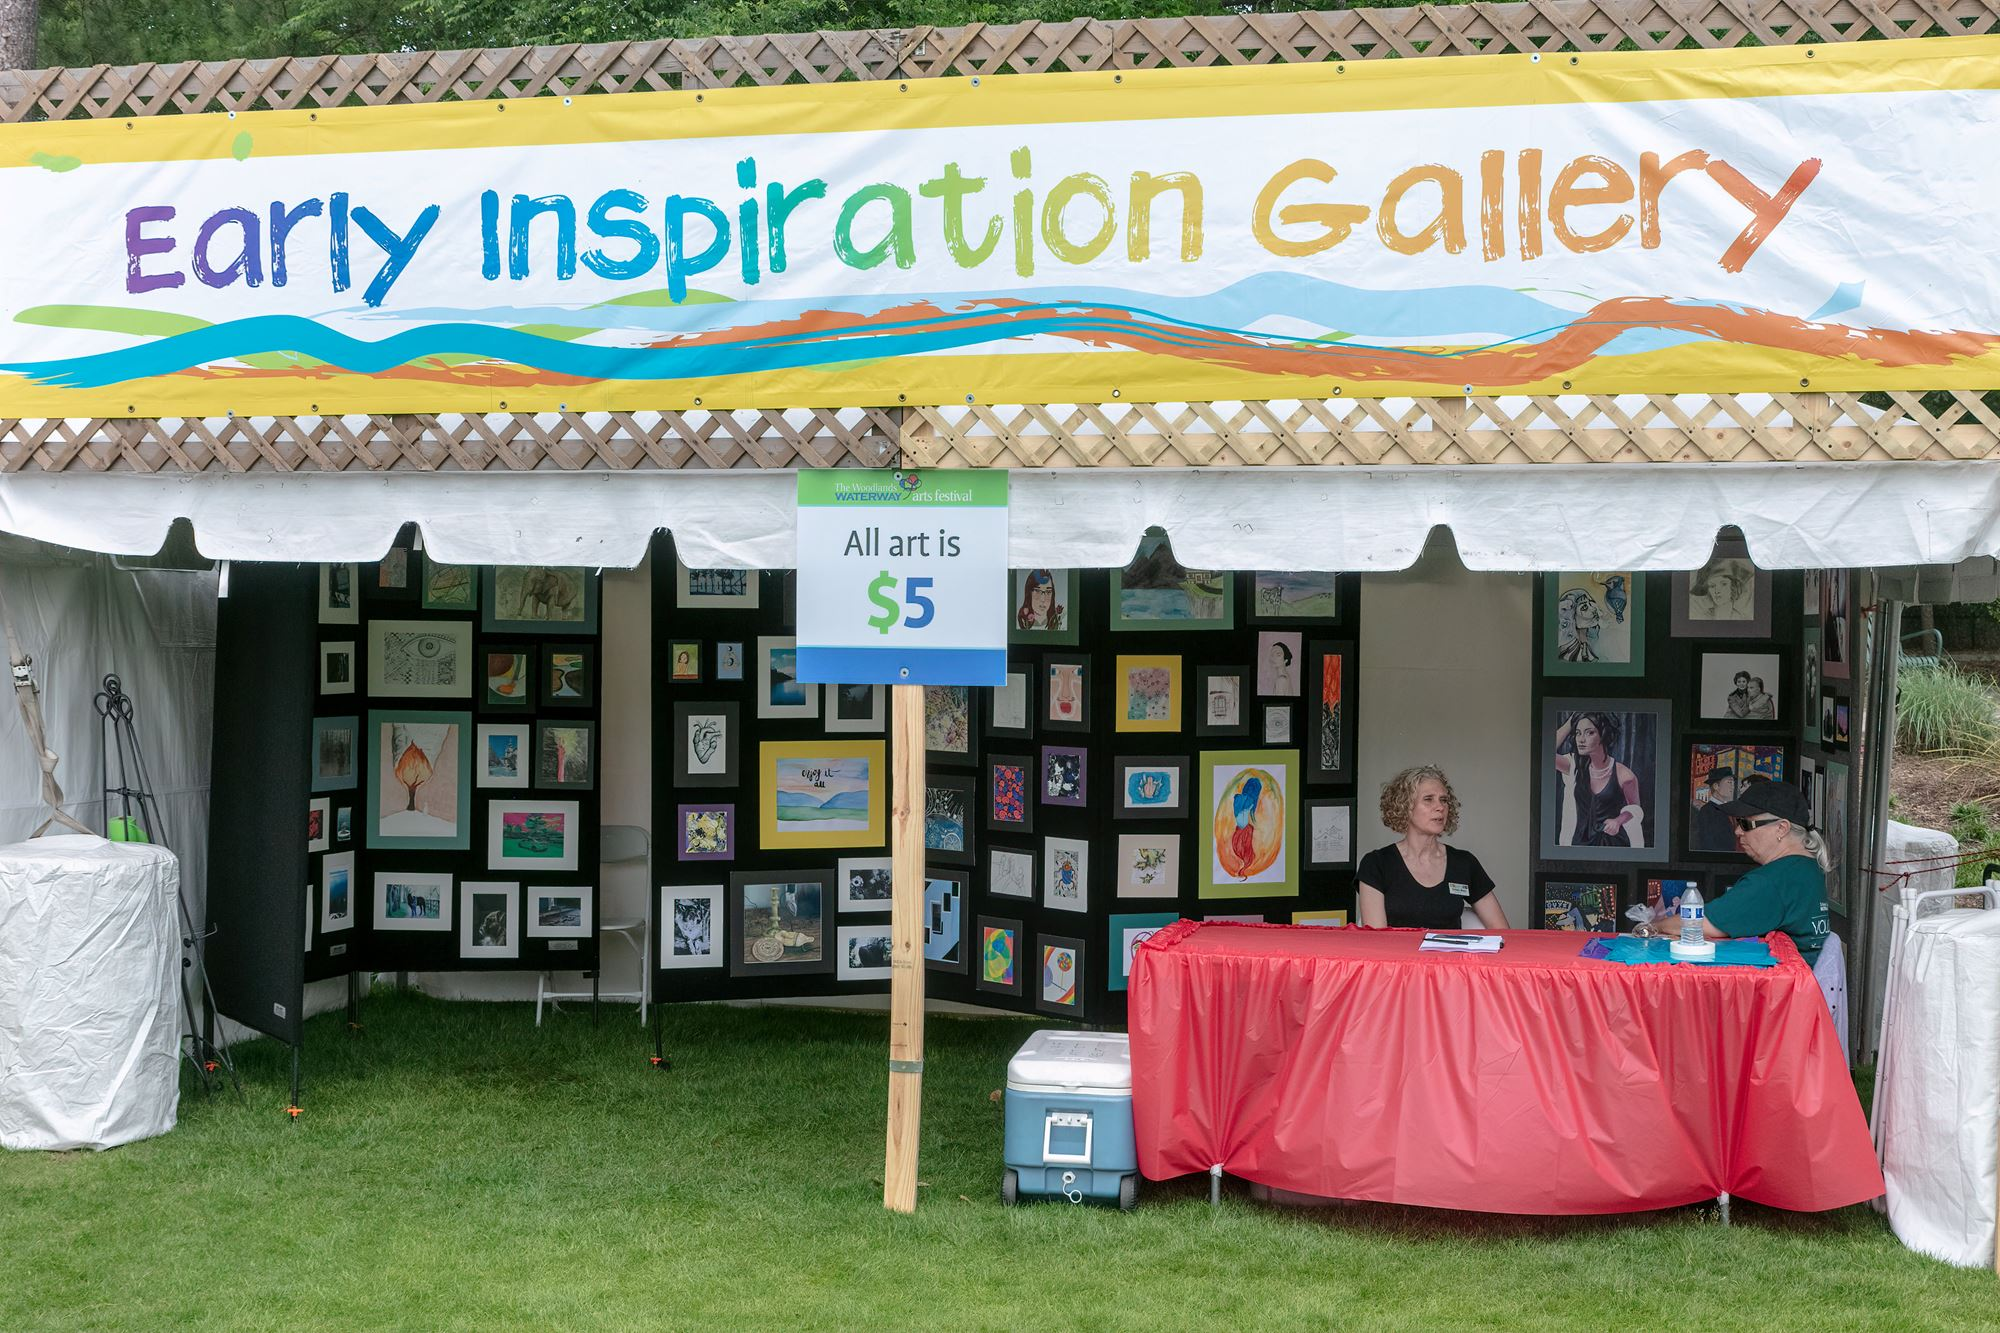 Early Inspiration Gallery art tent